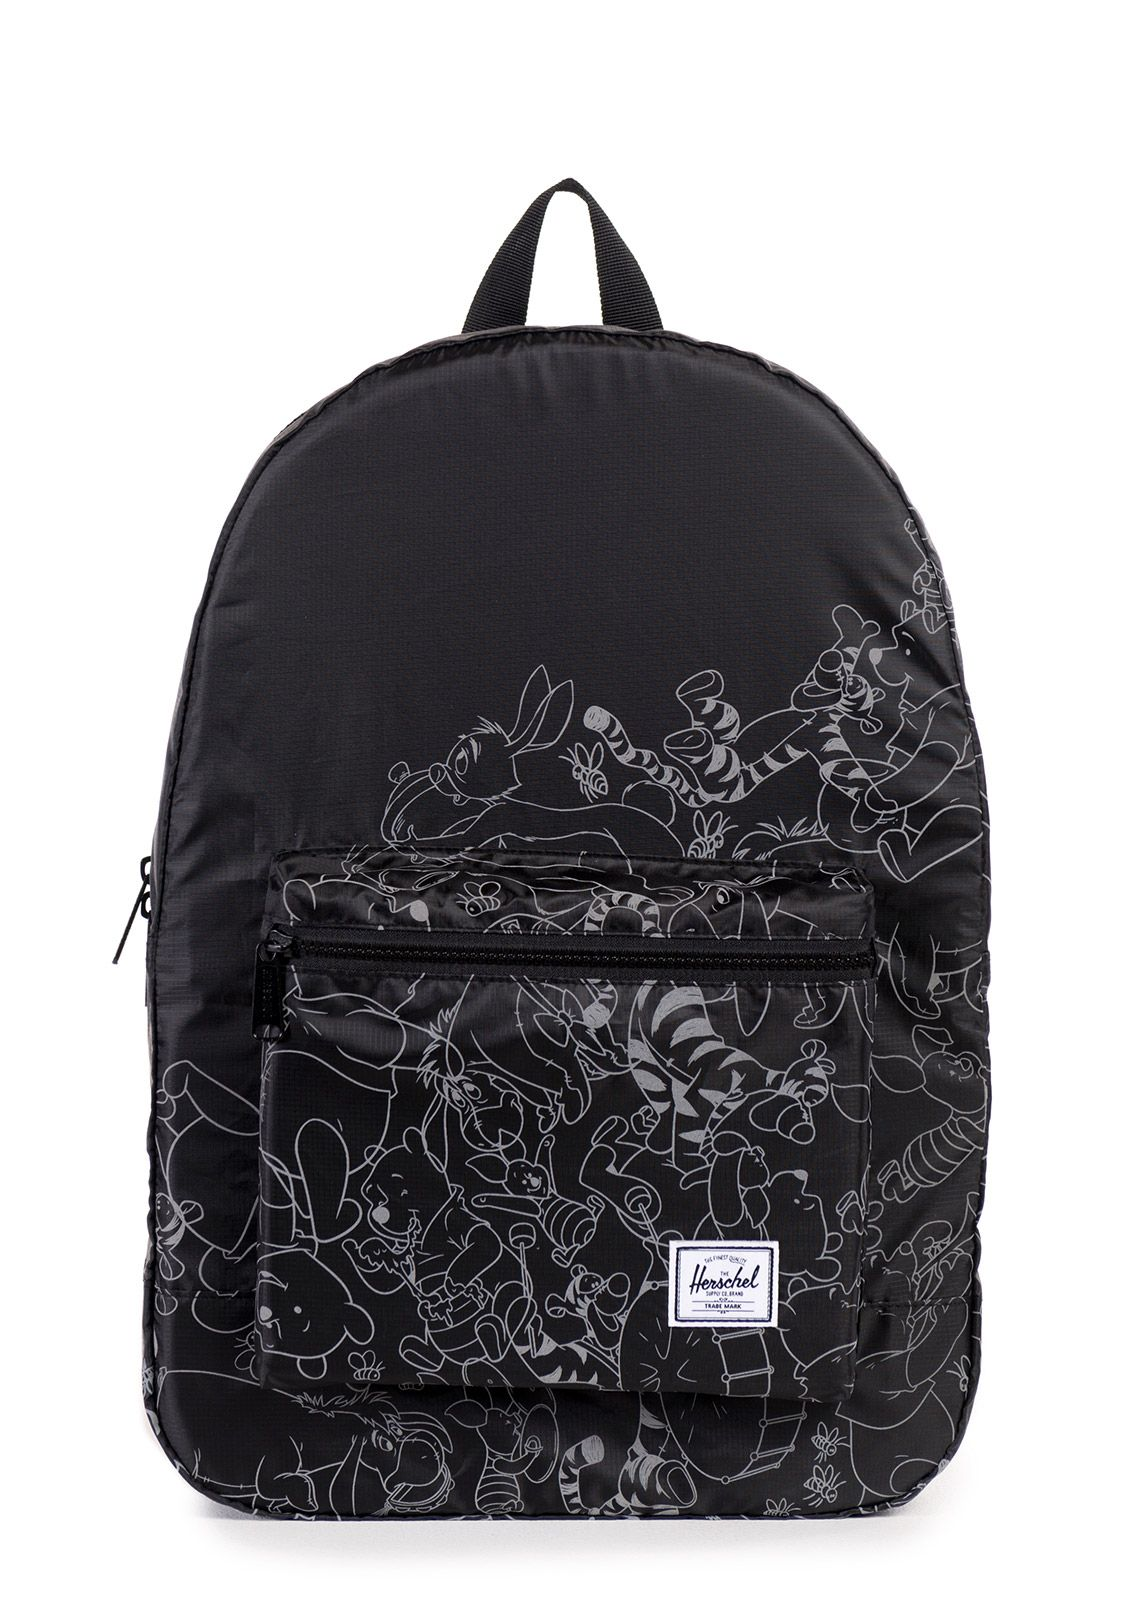 ae453427a955 Herschel Disney Collection - Winnie-the-Pooh